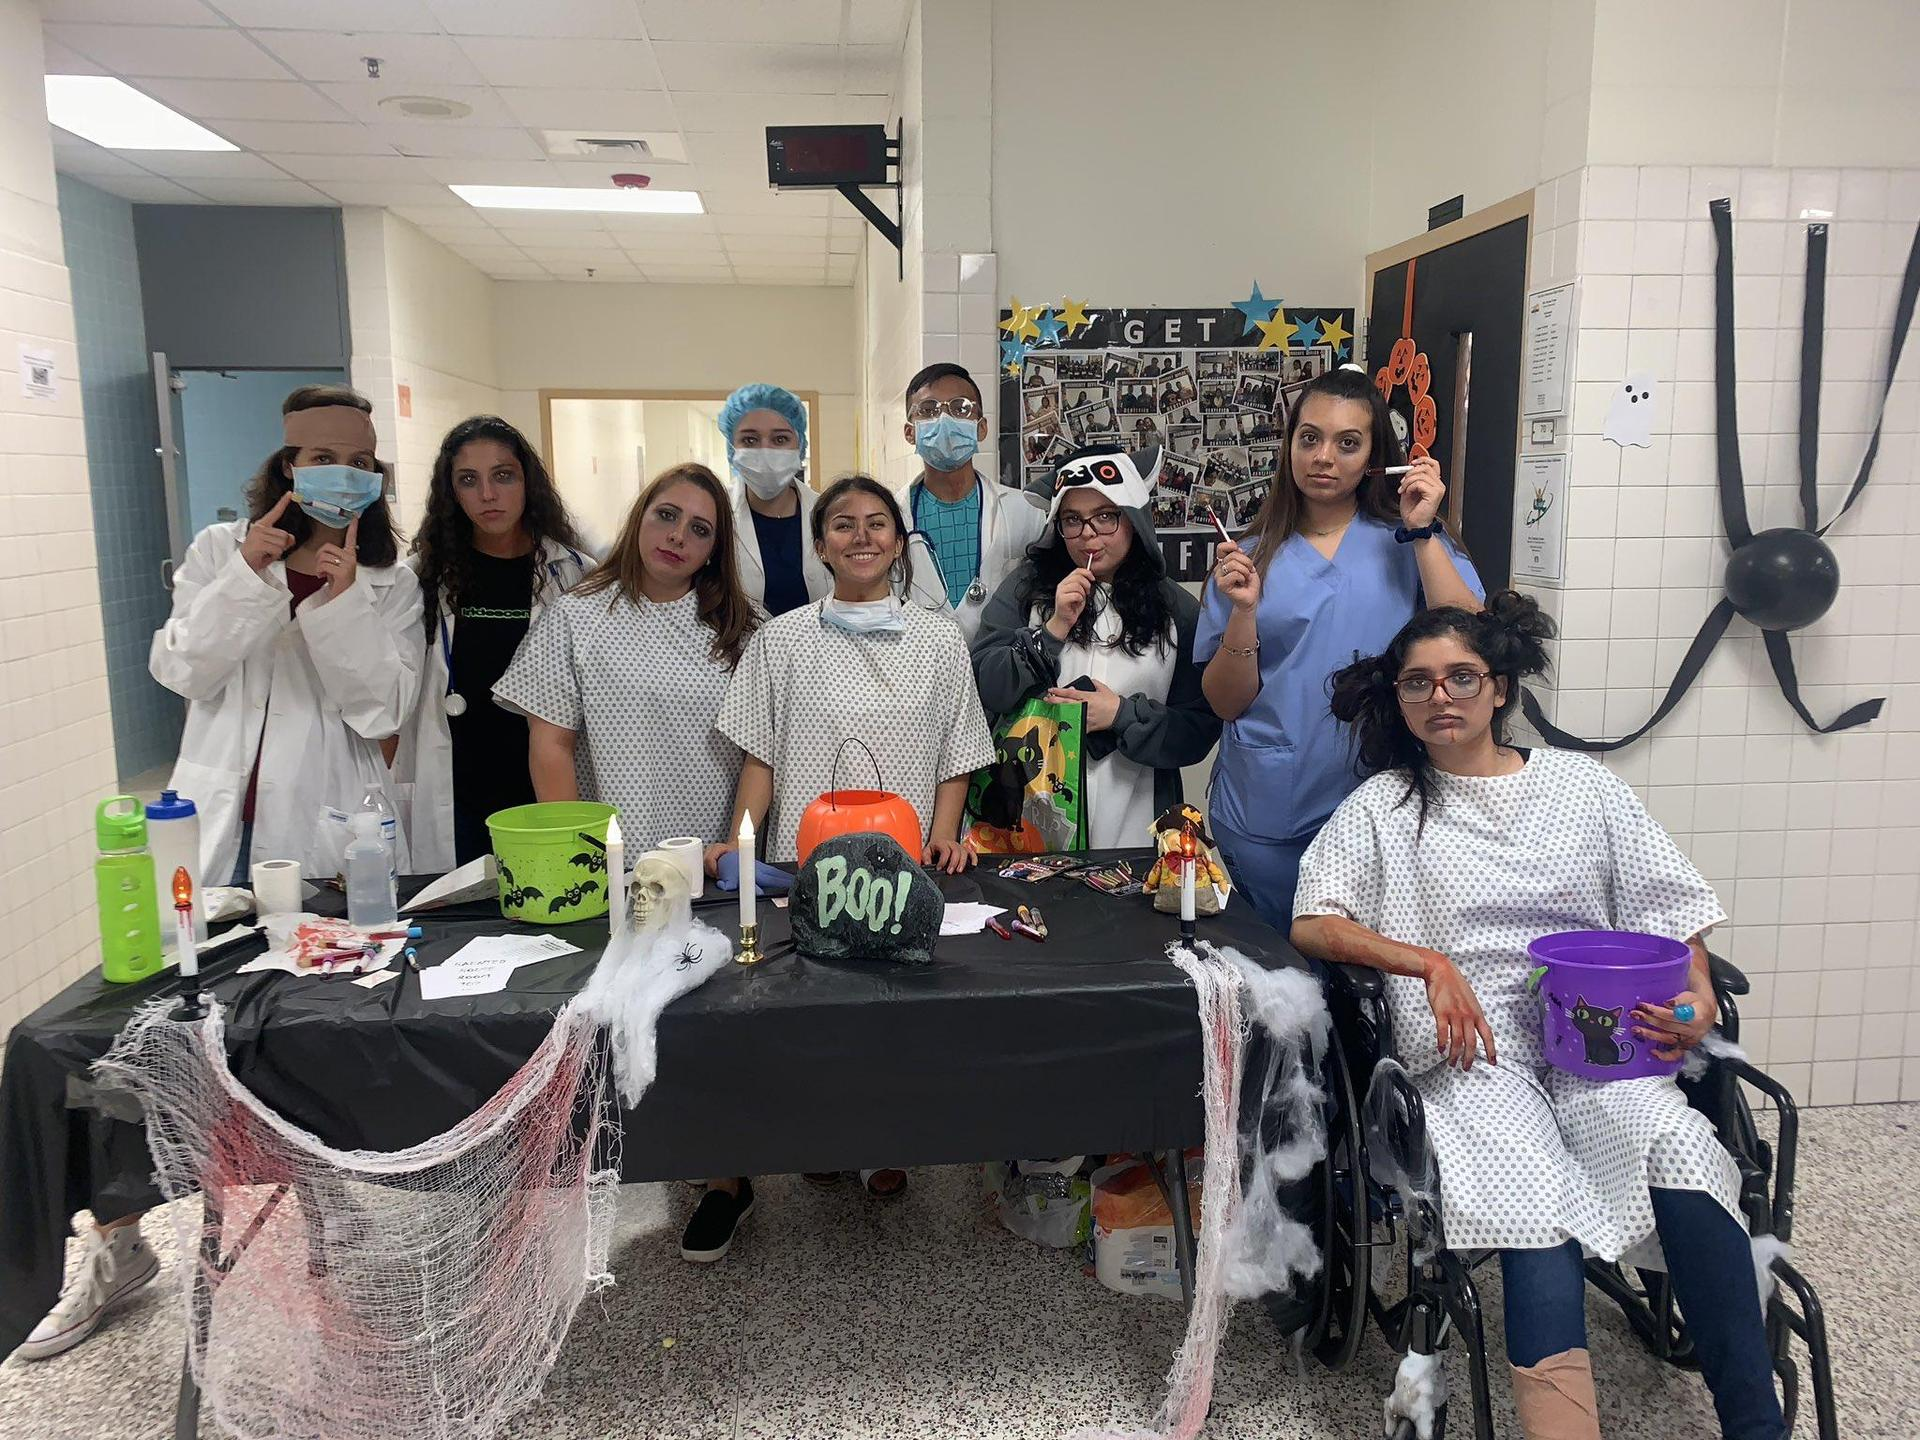 students in medical attire posing for a picture